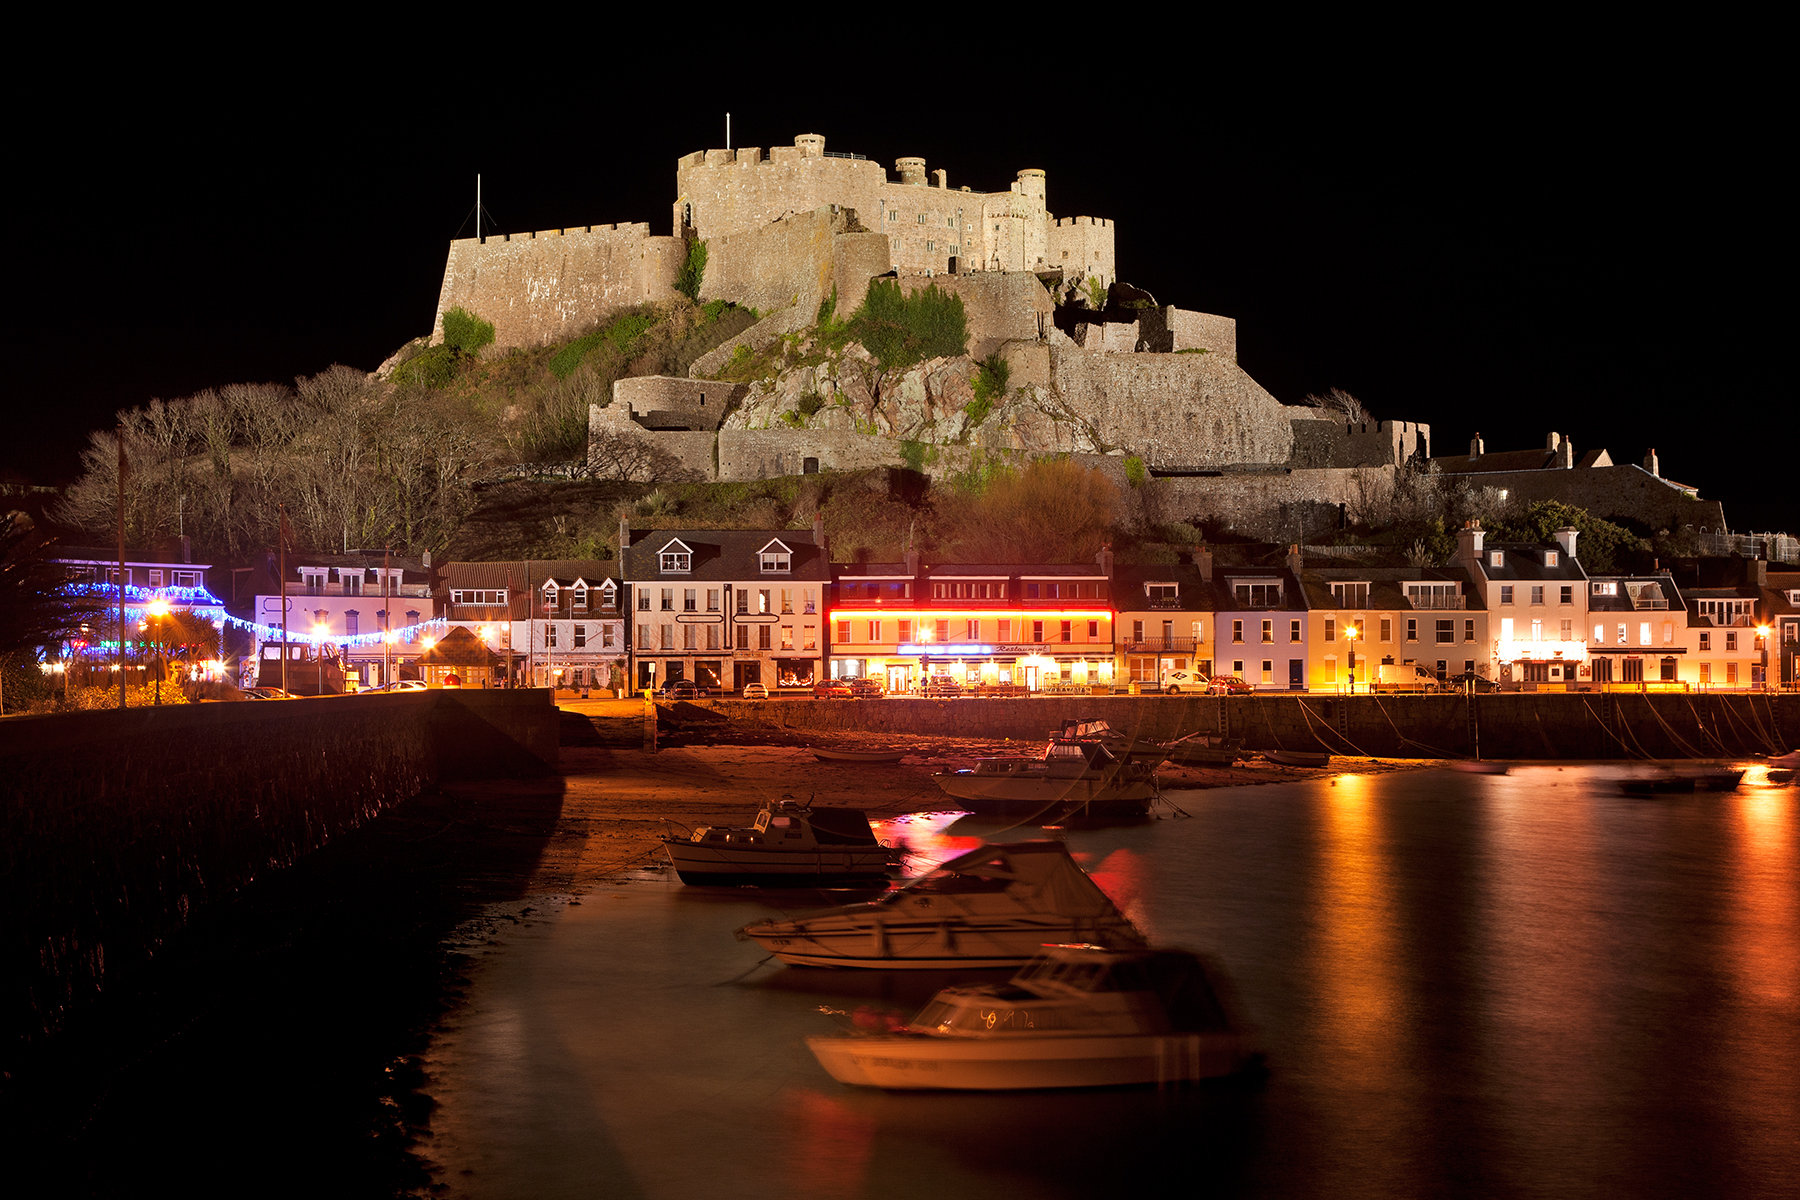 Jersey Night Castle - Mont Orgueil, Ages, Night, Reflection, Reflected, HQ Photo